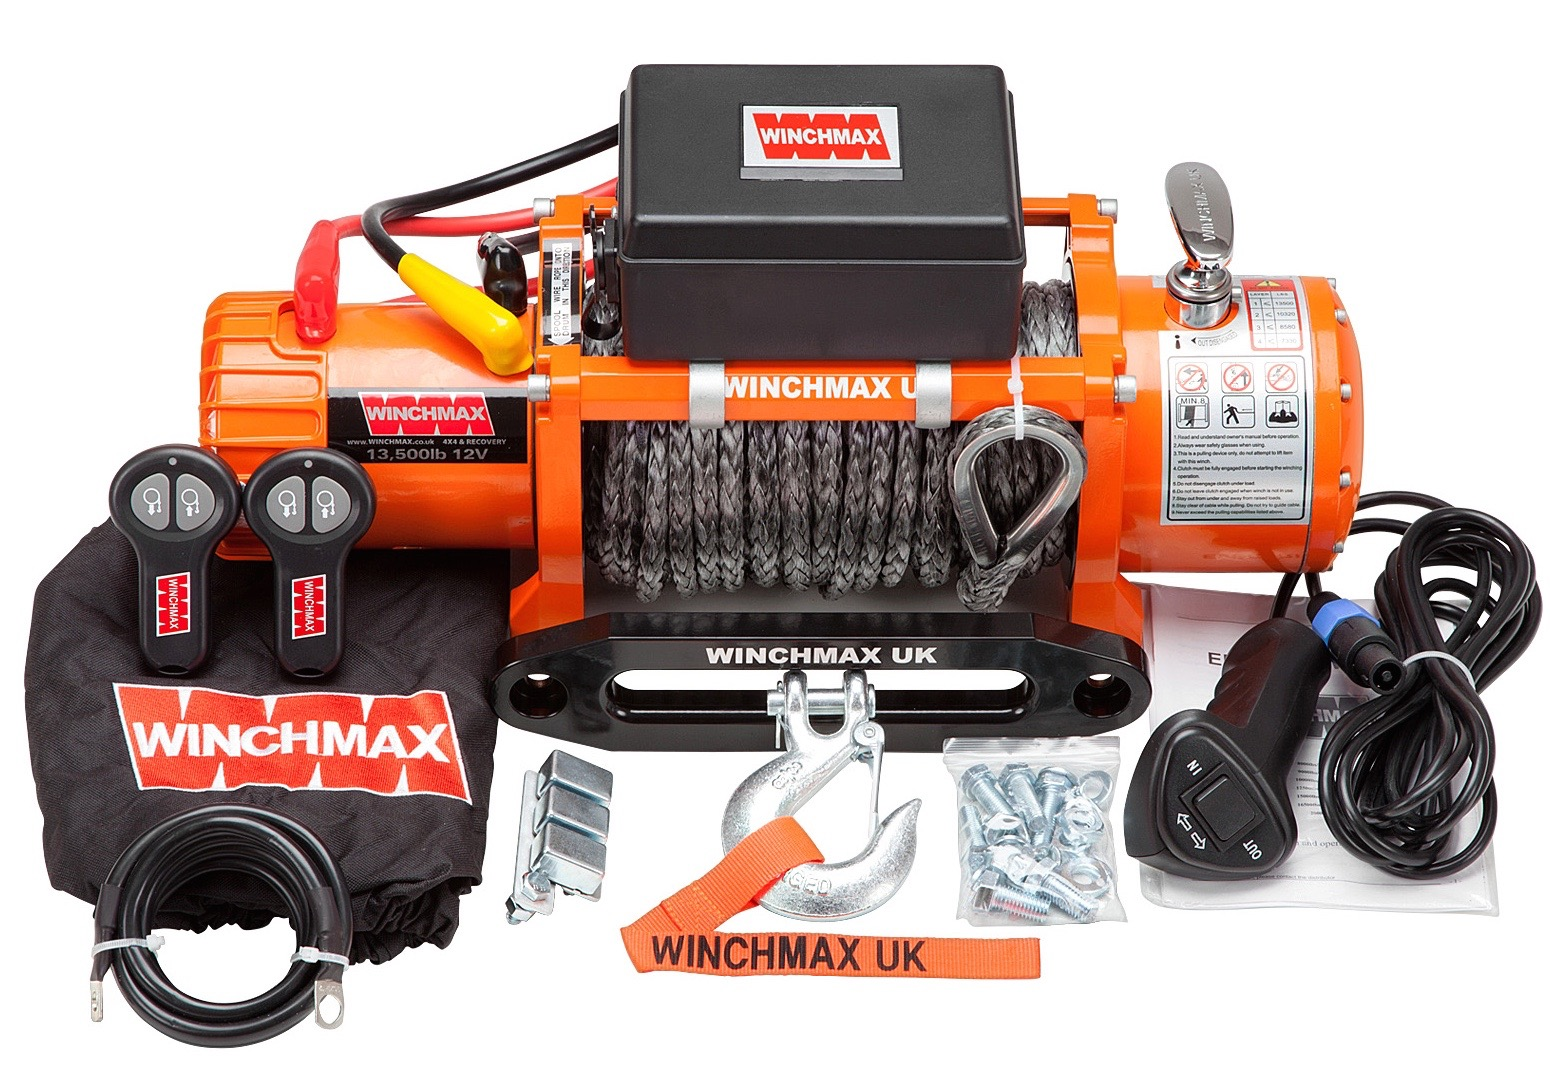 WINCHMAX 13500LB 12V ELECTRIC WINCH DYNEEMA ROPE WITH WIRELESS REMOTES